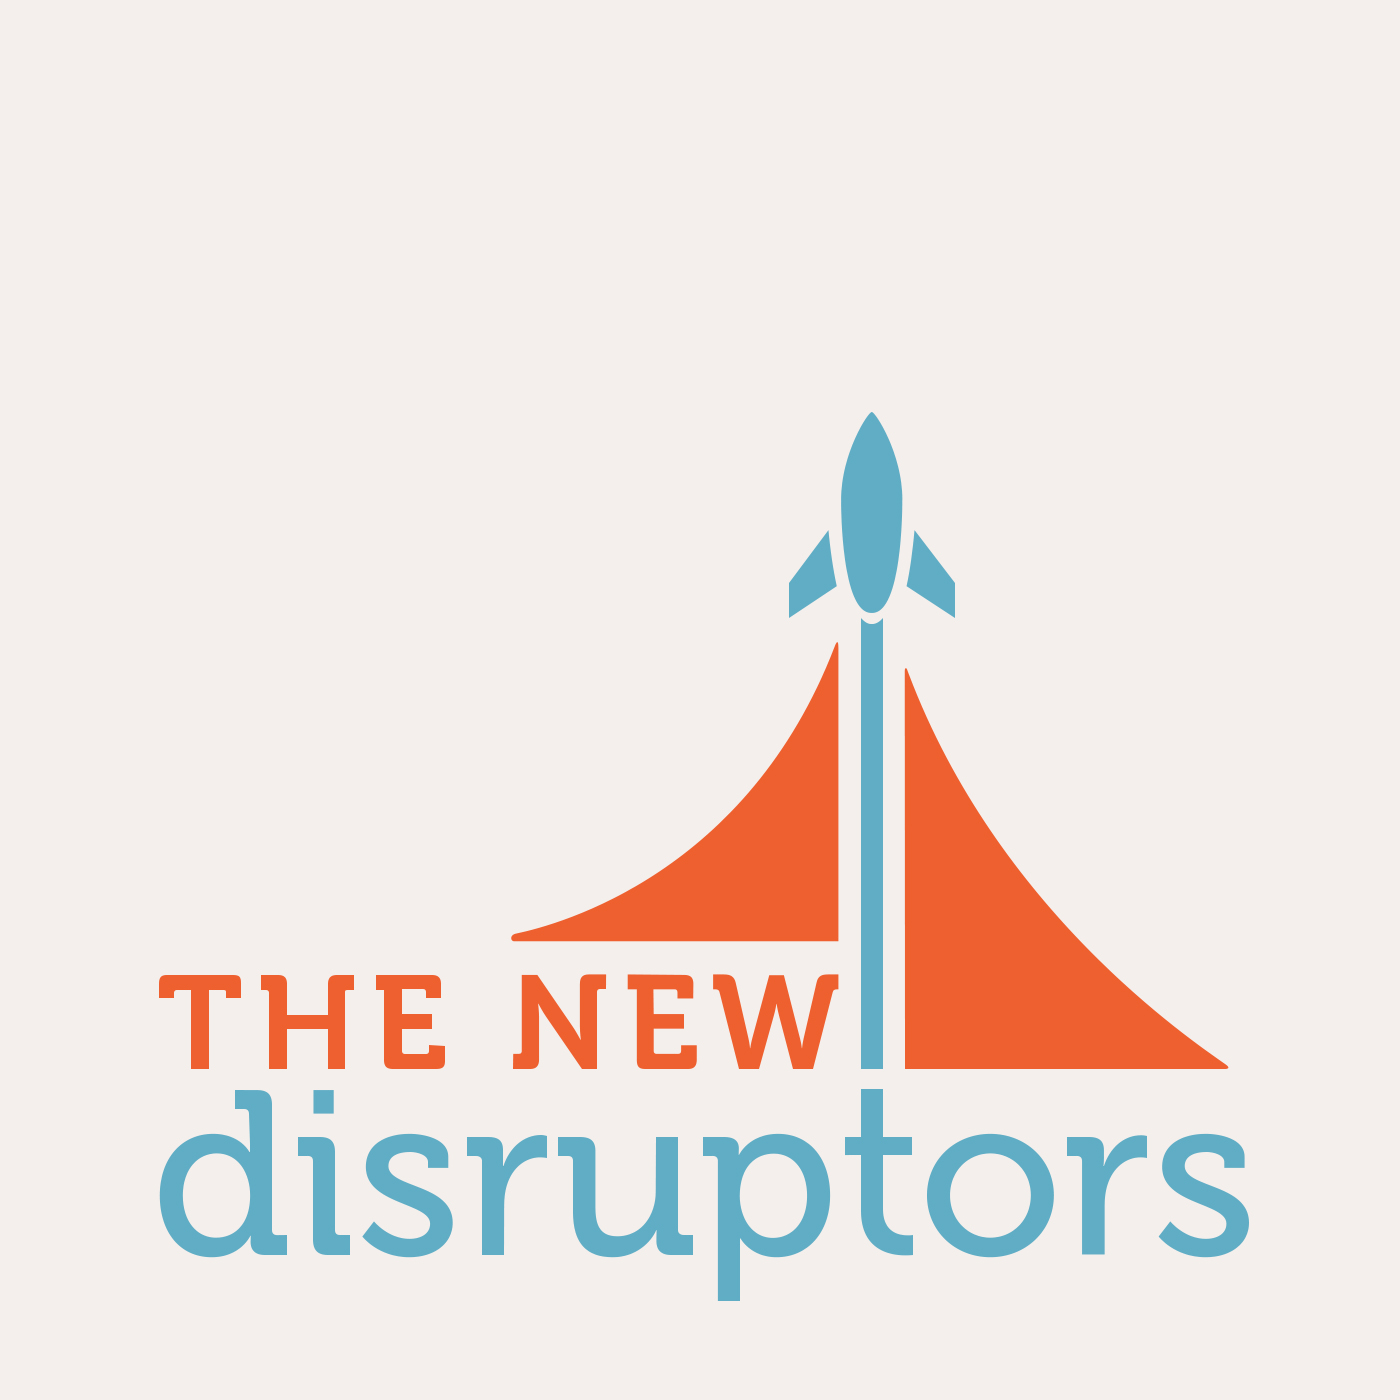 The New Disruptors